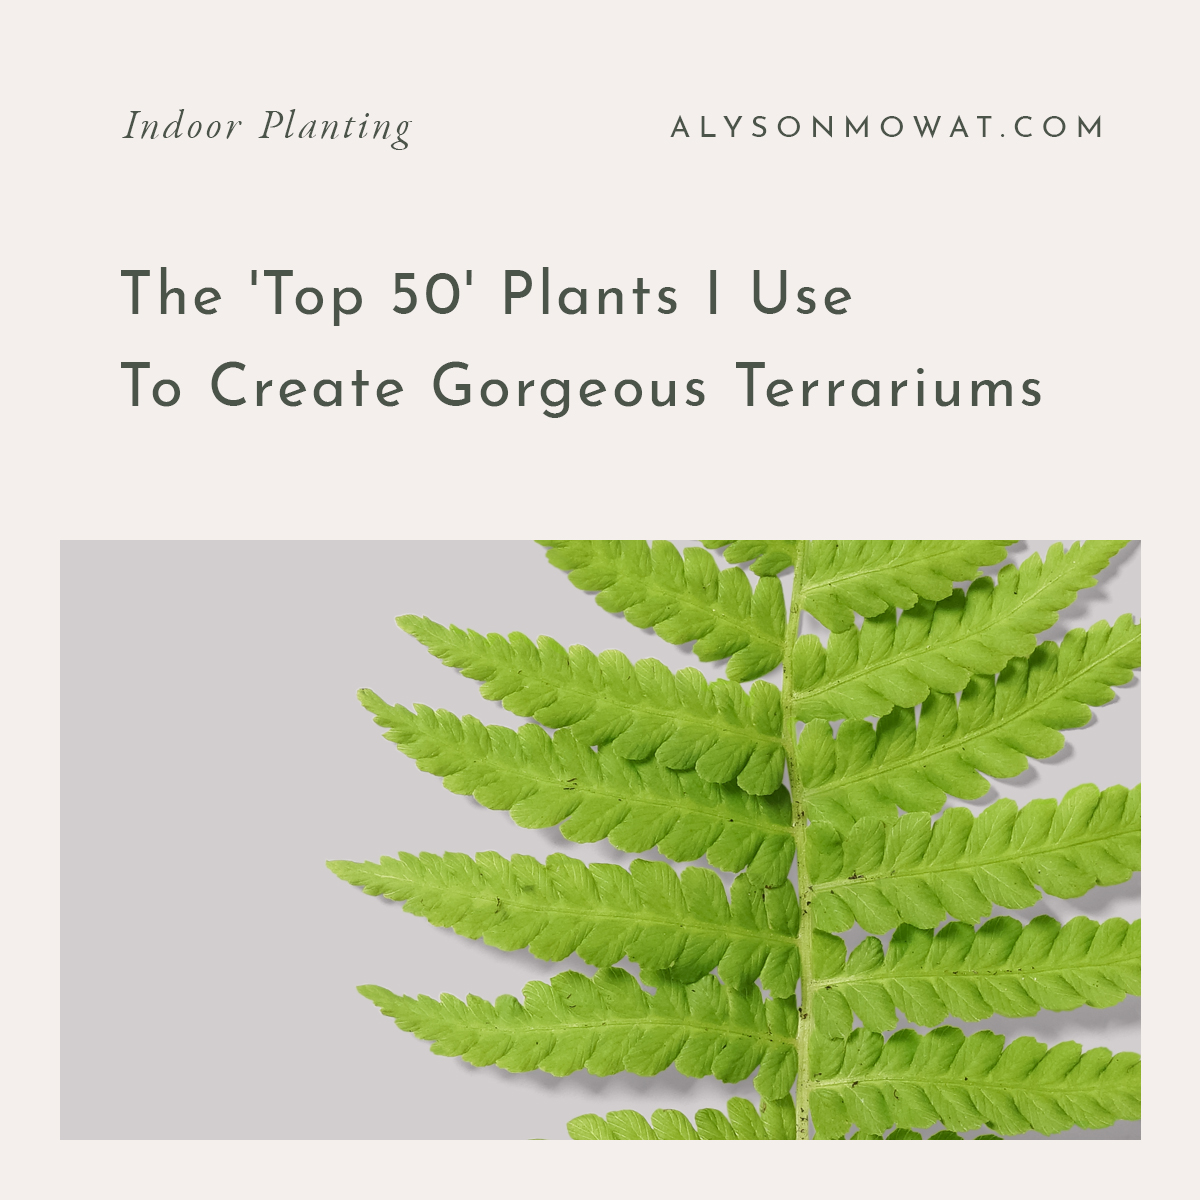 The 'Top 50' Plants I Use To Create Gorgeous Terrariums